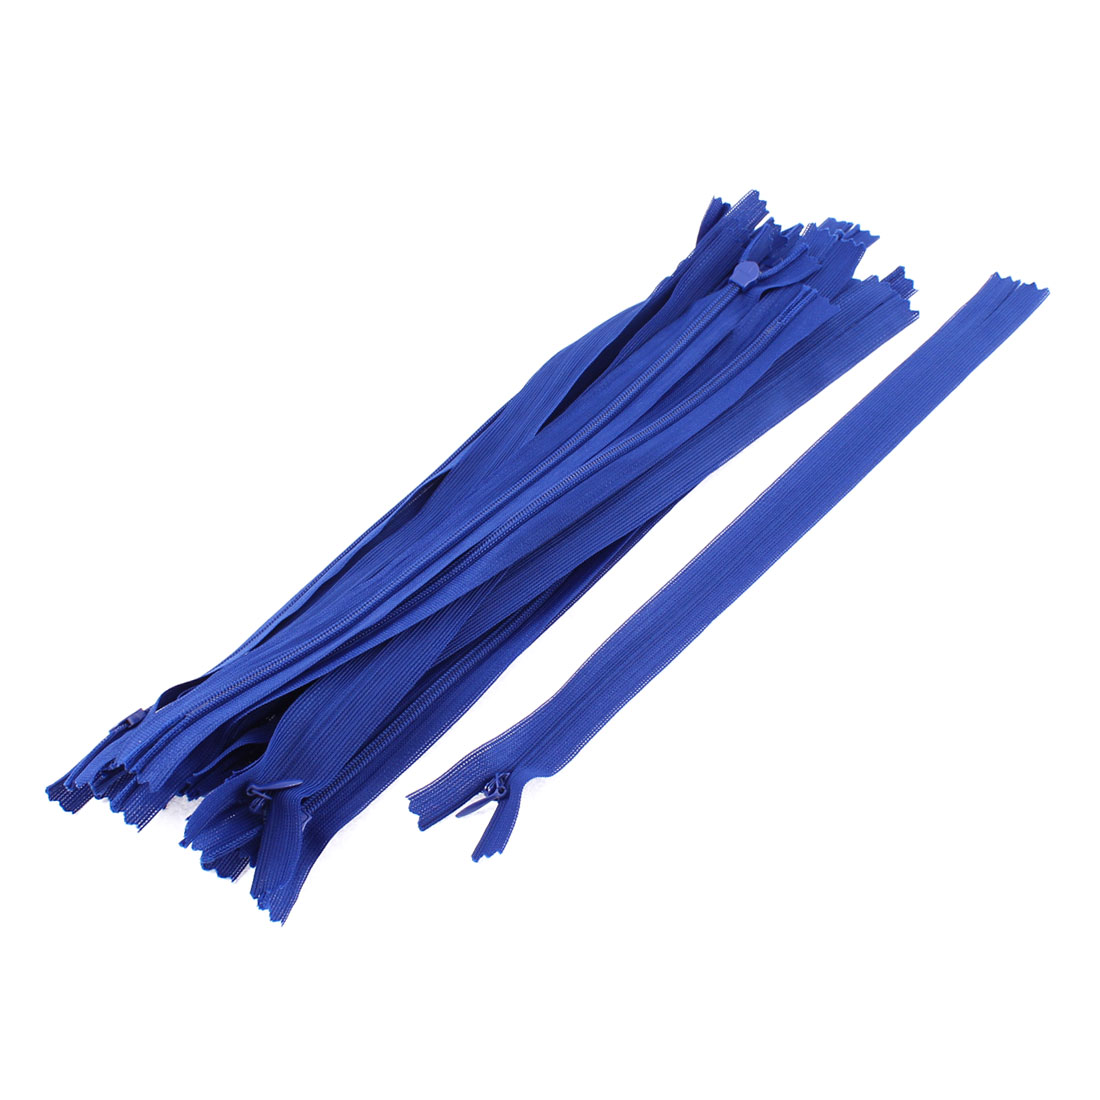 Dress Pants Closed End Nylon Zippers Tailor Sewing Craft Tool Blue 25cm 20 Pcs